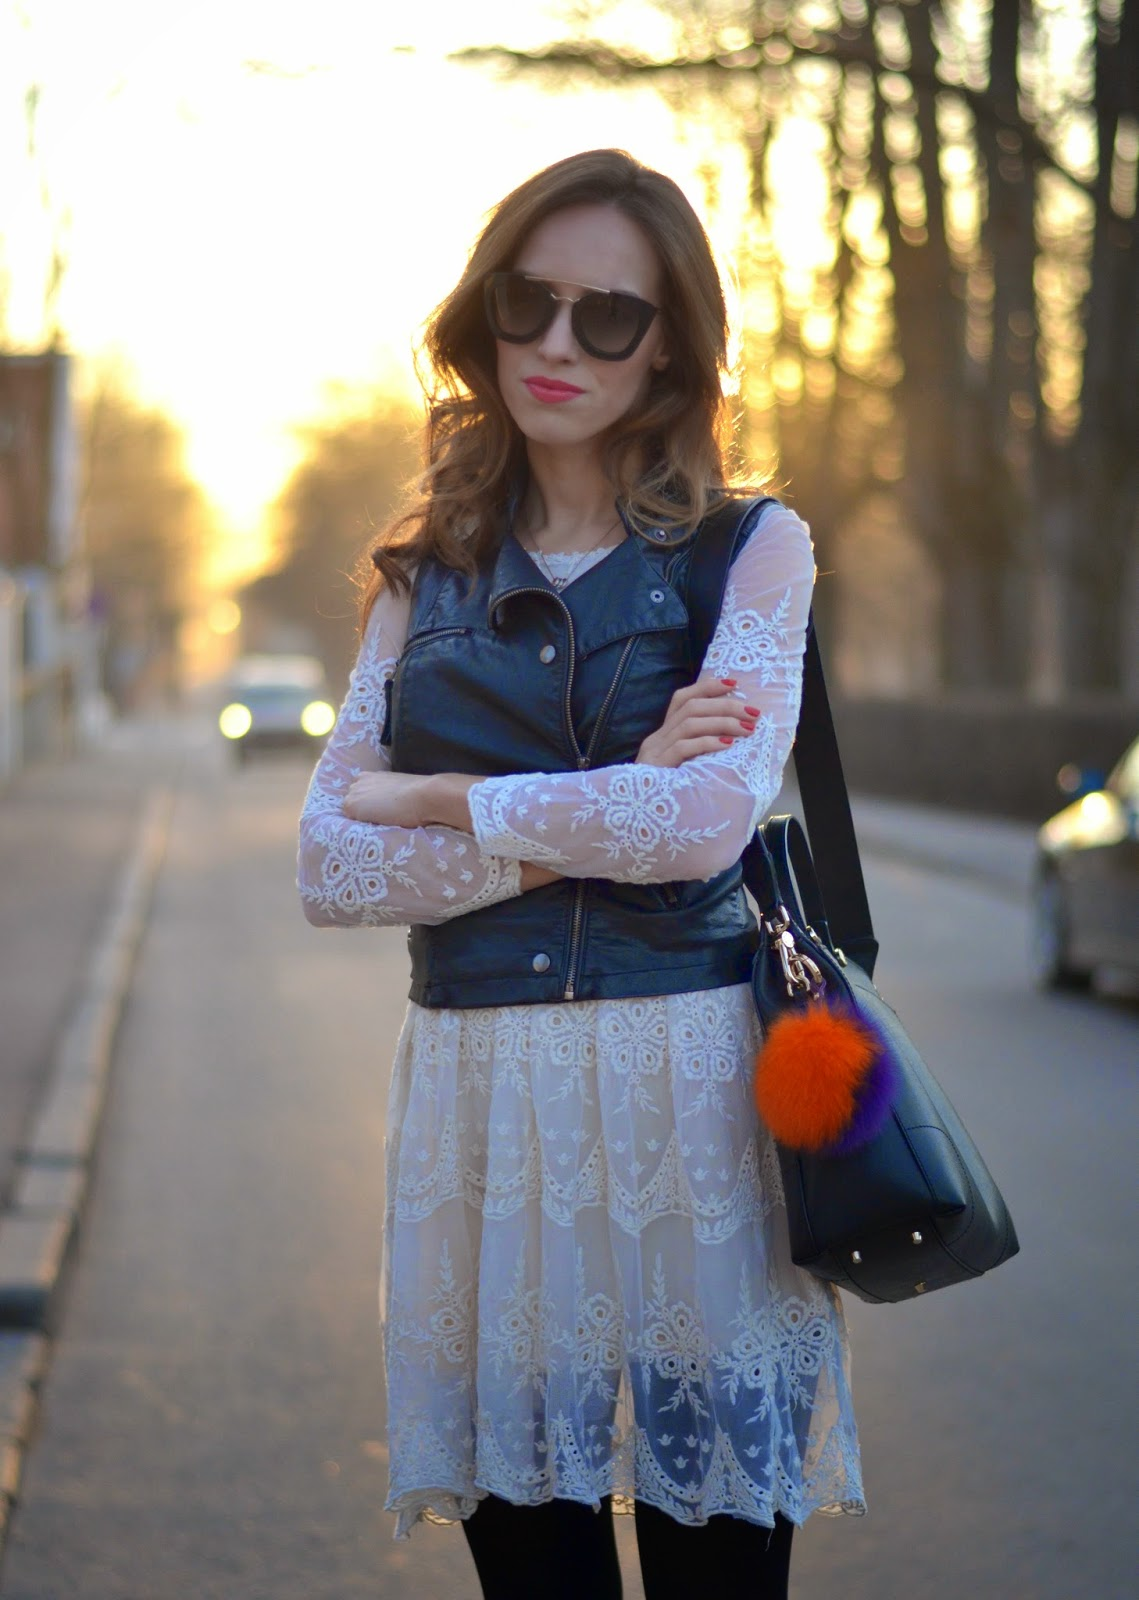 moto-chic-outfit-leather-vest-lace-dress kristjaana mere